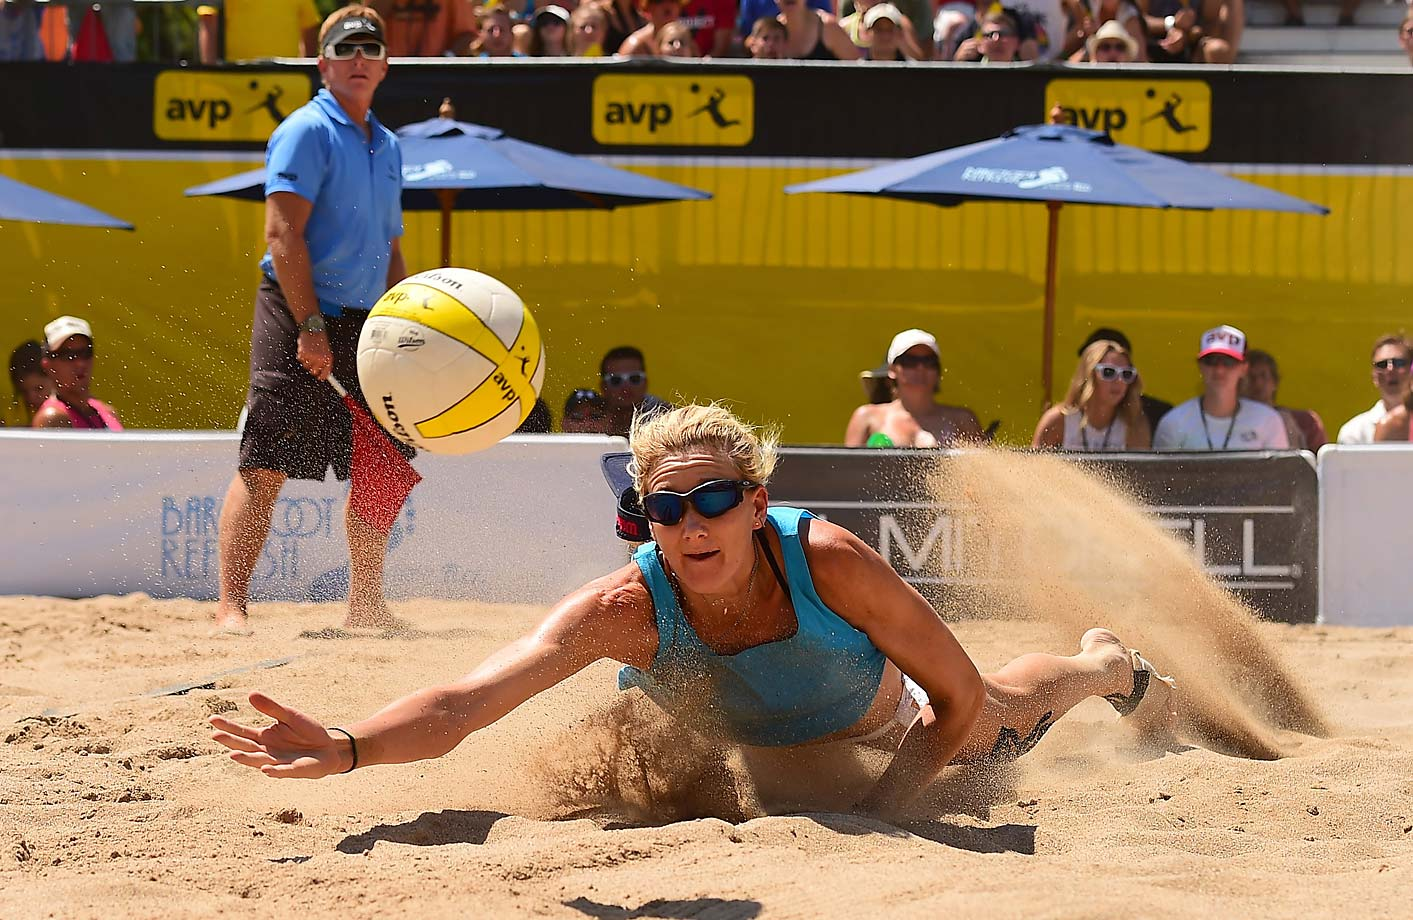 Kerri Walsh Jennings goes all out for a driven ball. She had 39 digs for the week.